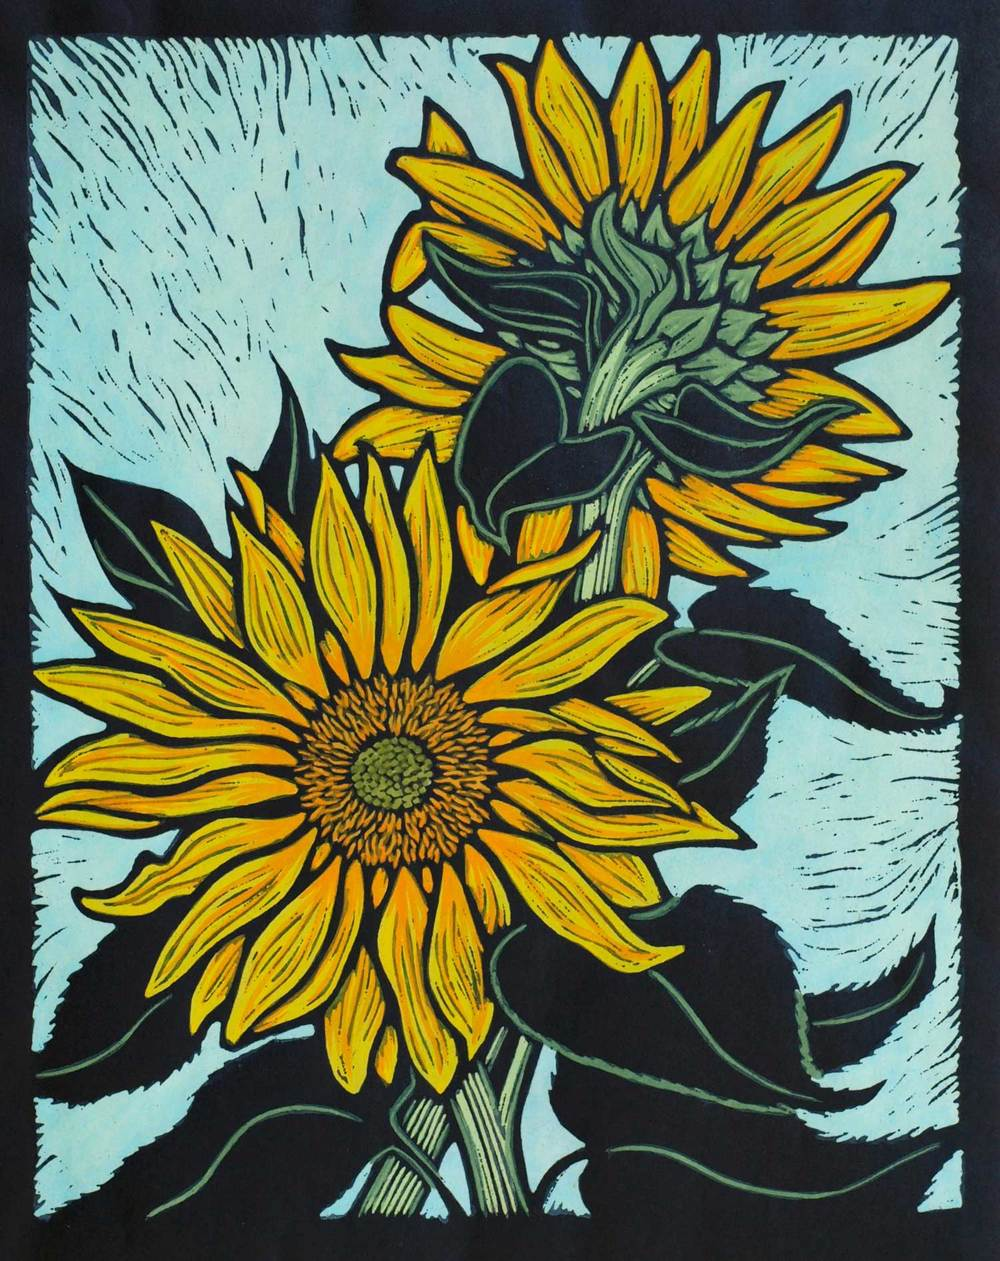 SUNFLOWER                                                   28 X 22 CM    EDITION OF 50                     HAND COLOURED LINOCUT ON HANDMADE JAPANESE PAPER                $650